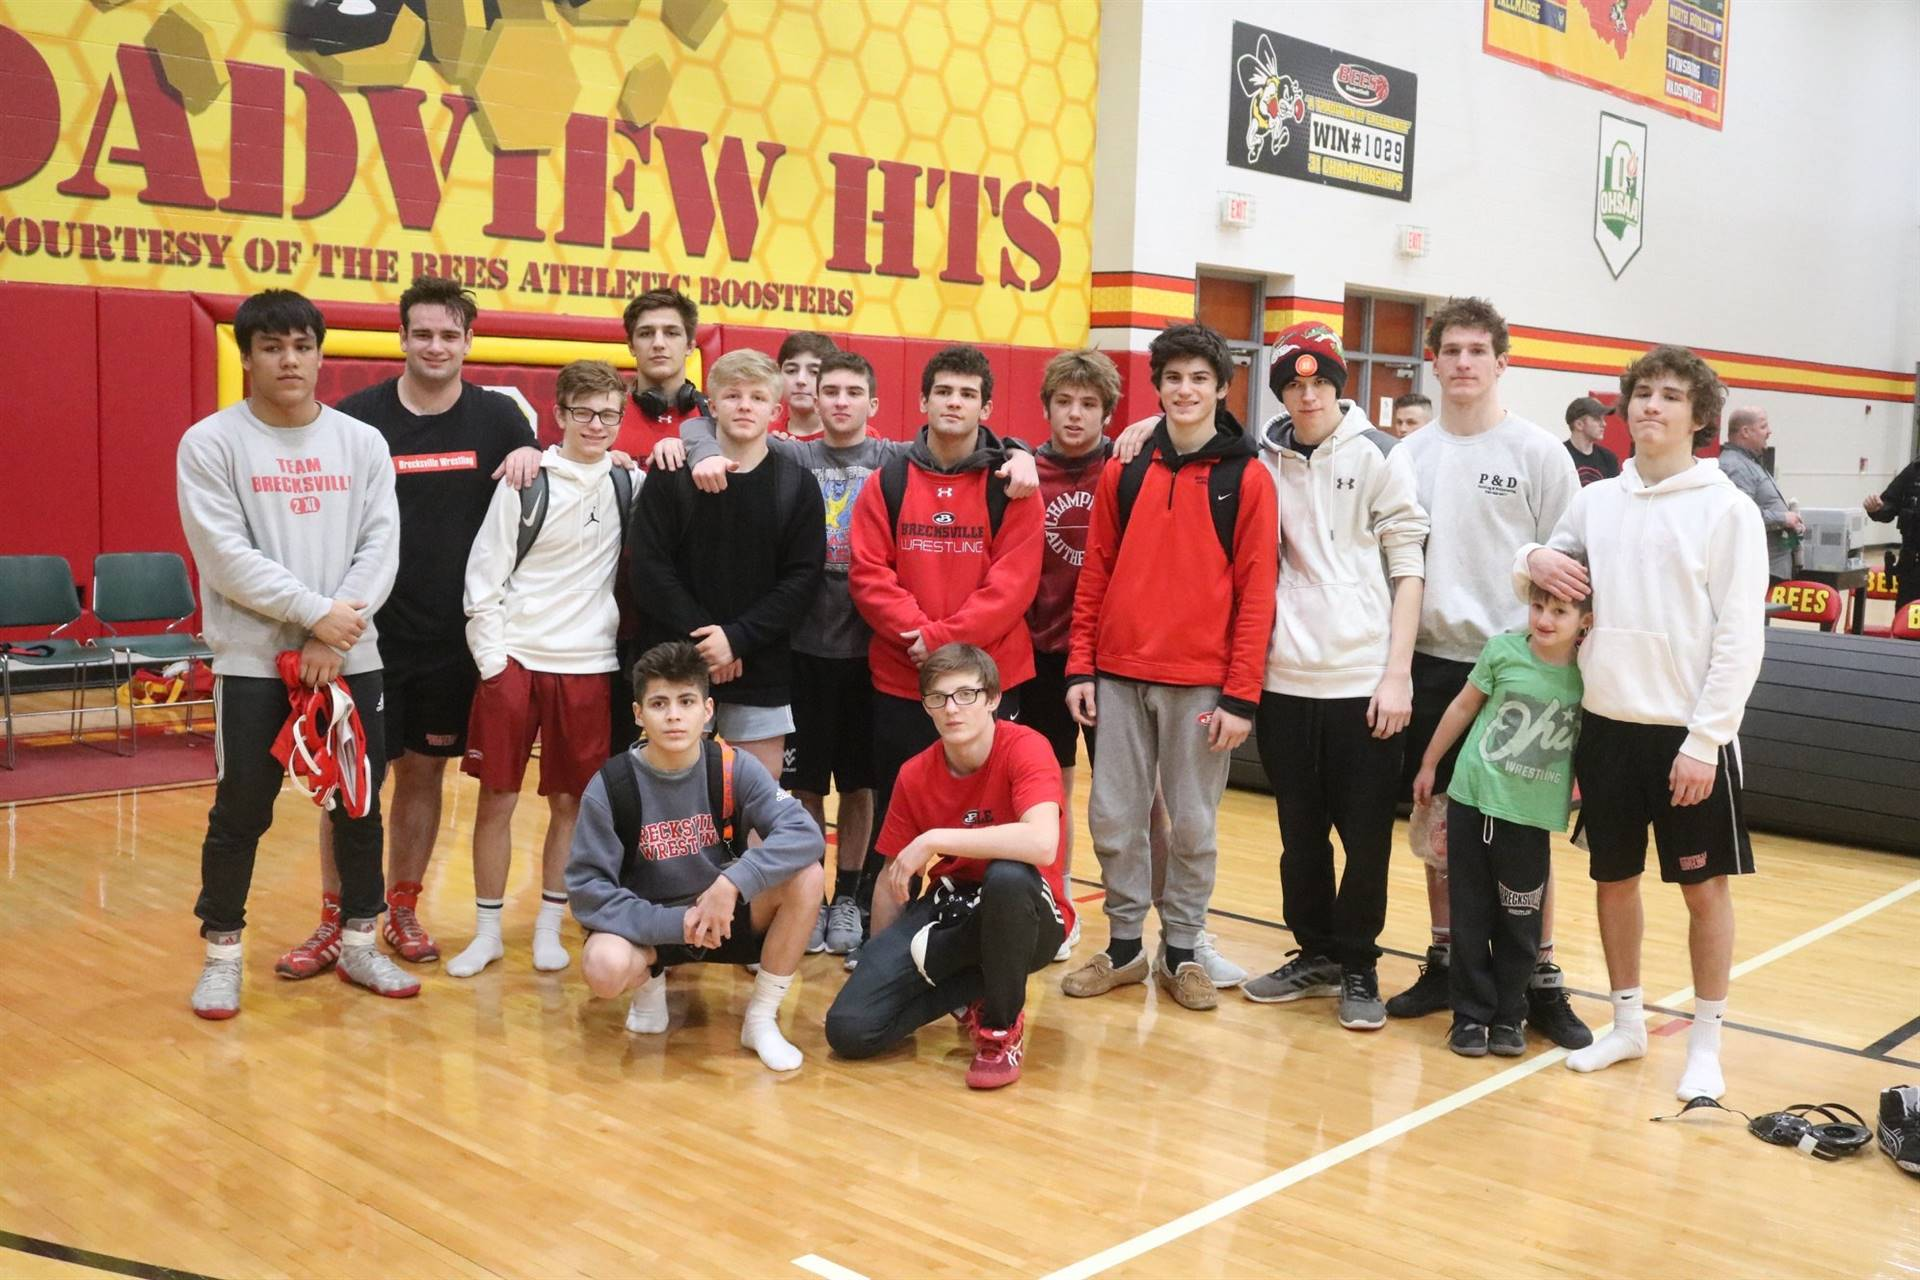 Sectional Champion Wrestlers heading to State